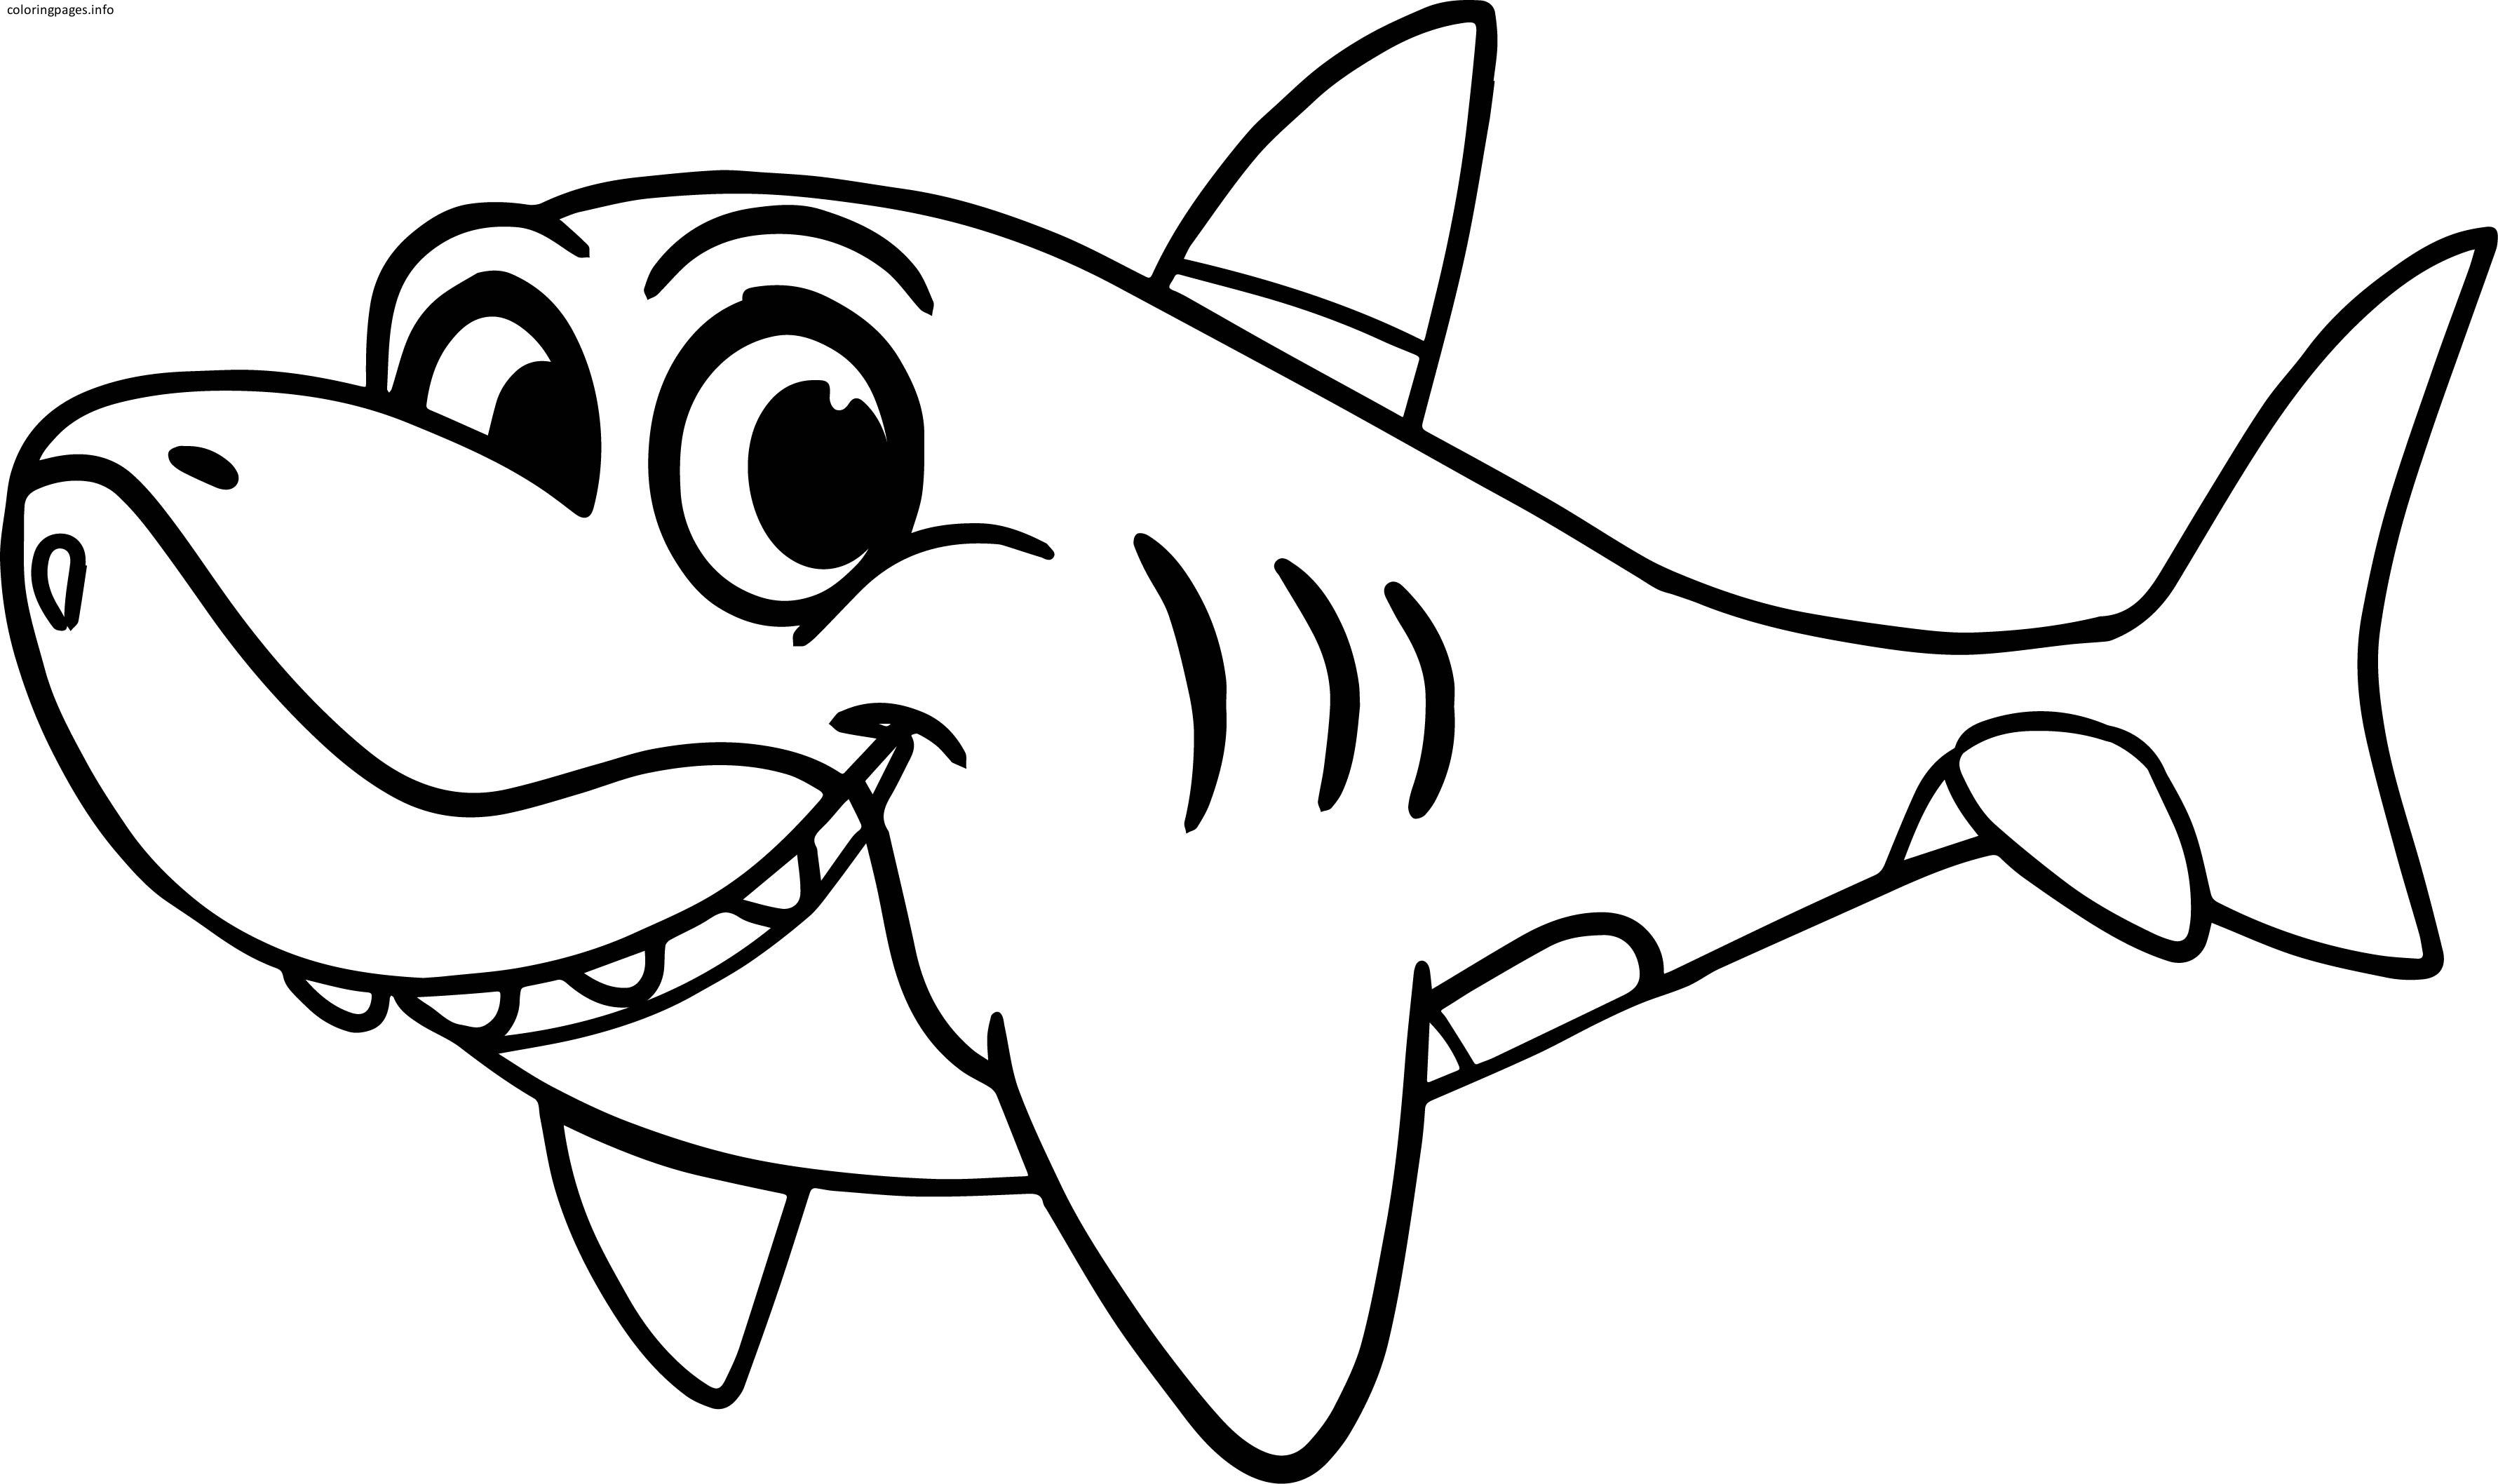 3562x2116 Shark Coloring Pages Shark Pdf Free At Coloringpages Info